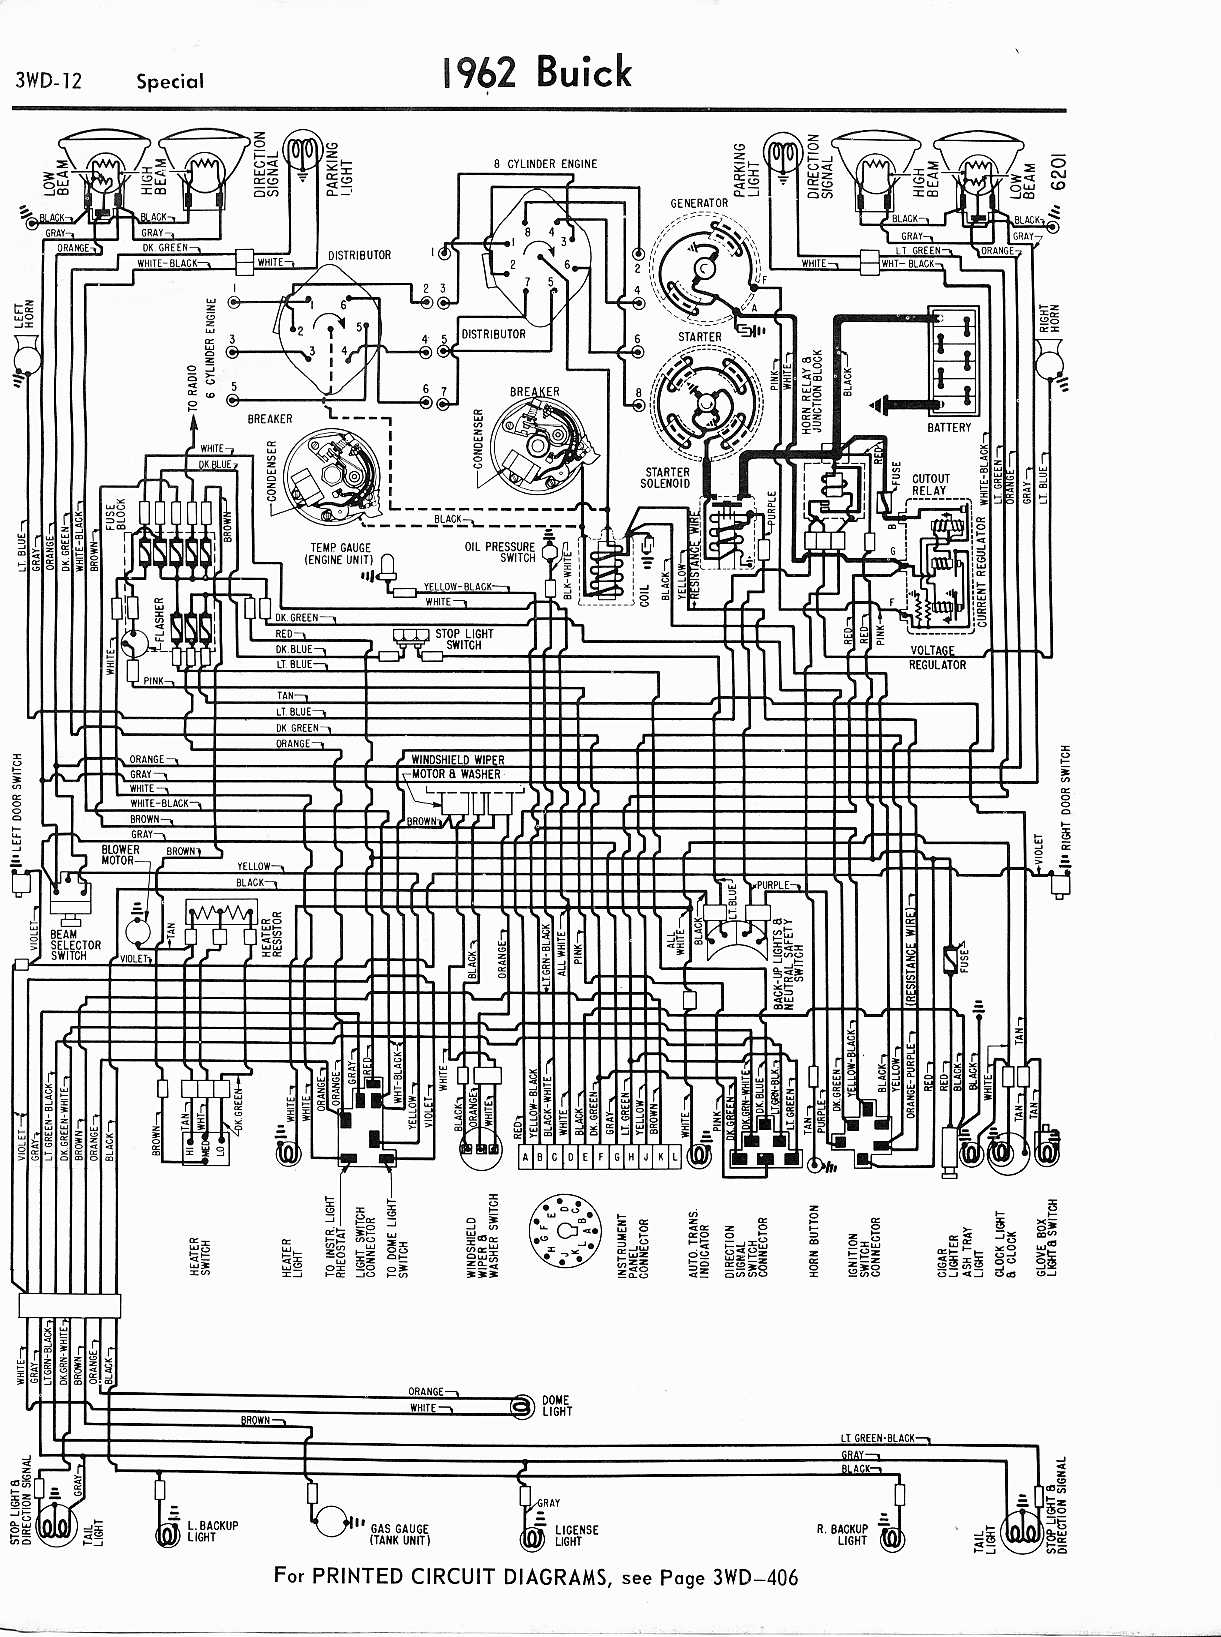 buick wiring diagrams: 1957-1965 1979 xs1100 wiring diagram free picture schematic